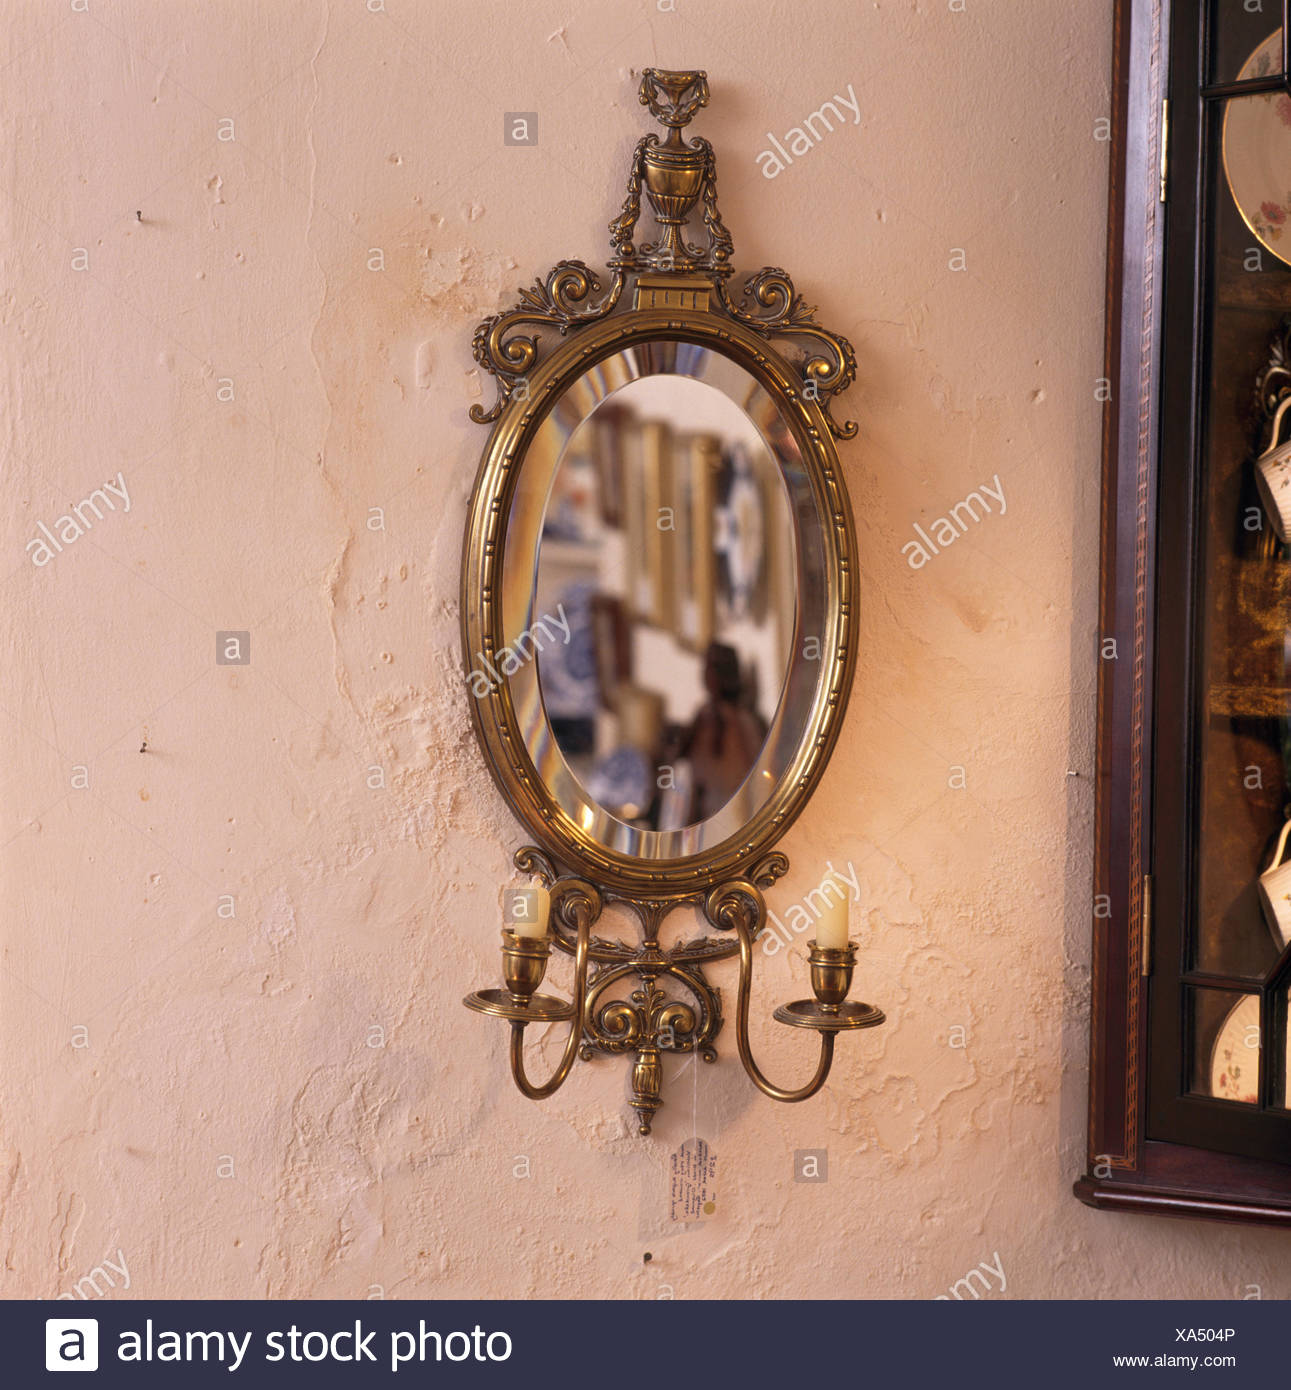 Close Up Of A Gilt Antique Wall Mirror With Integral Candle Holders Stock Photo Alamy